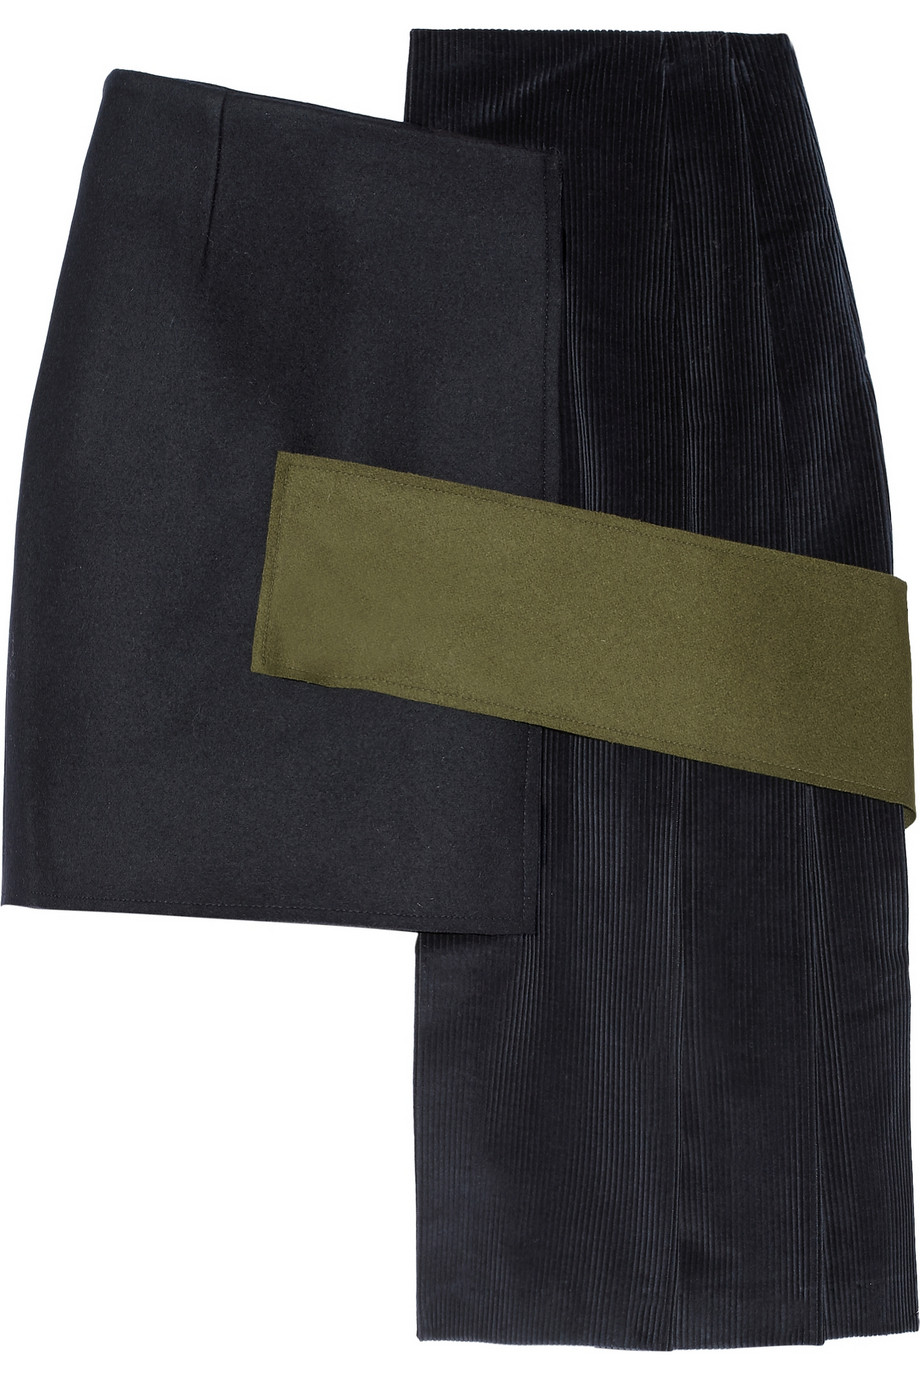 Jacquemus  skirt - was $550, now $275